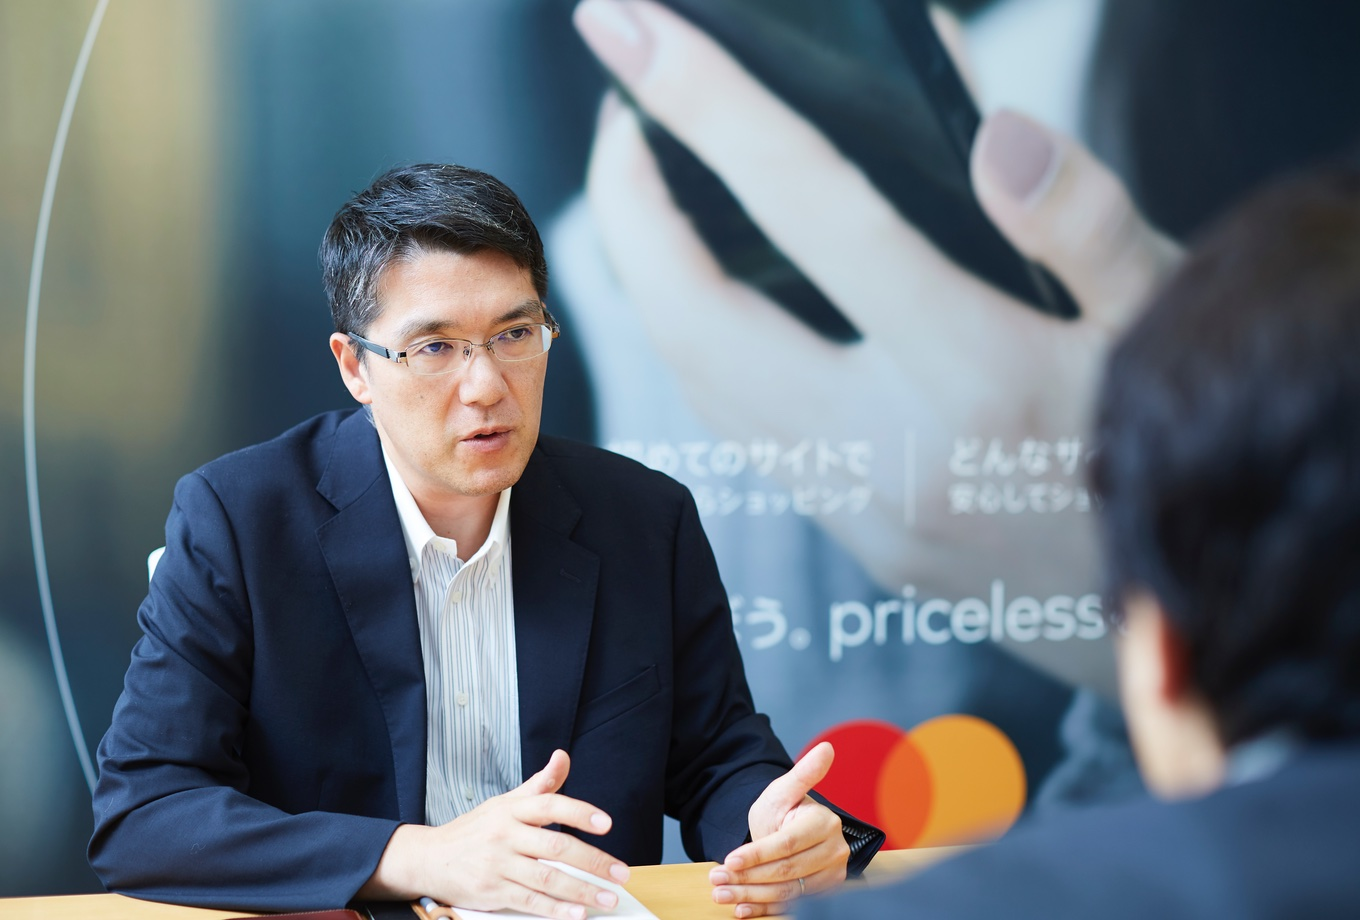 Mastercard and Cashless expert Iwata sensei discuss about debit card with Moneytree for Moneytree B2B blog 2019 Maeda san from Mastercard